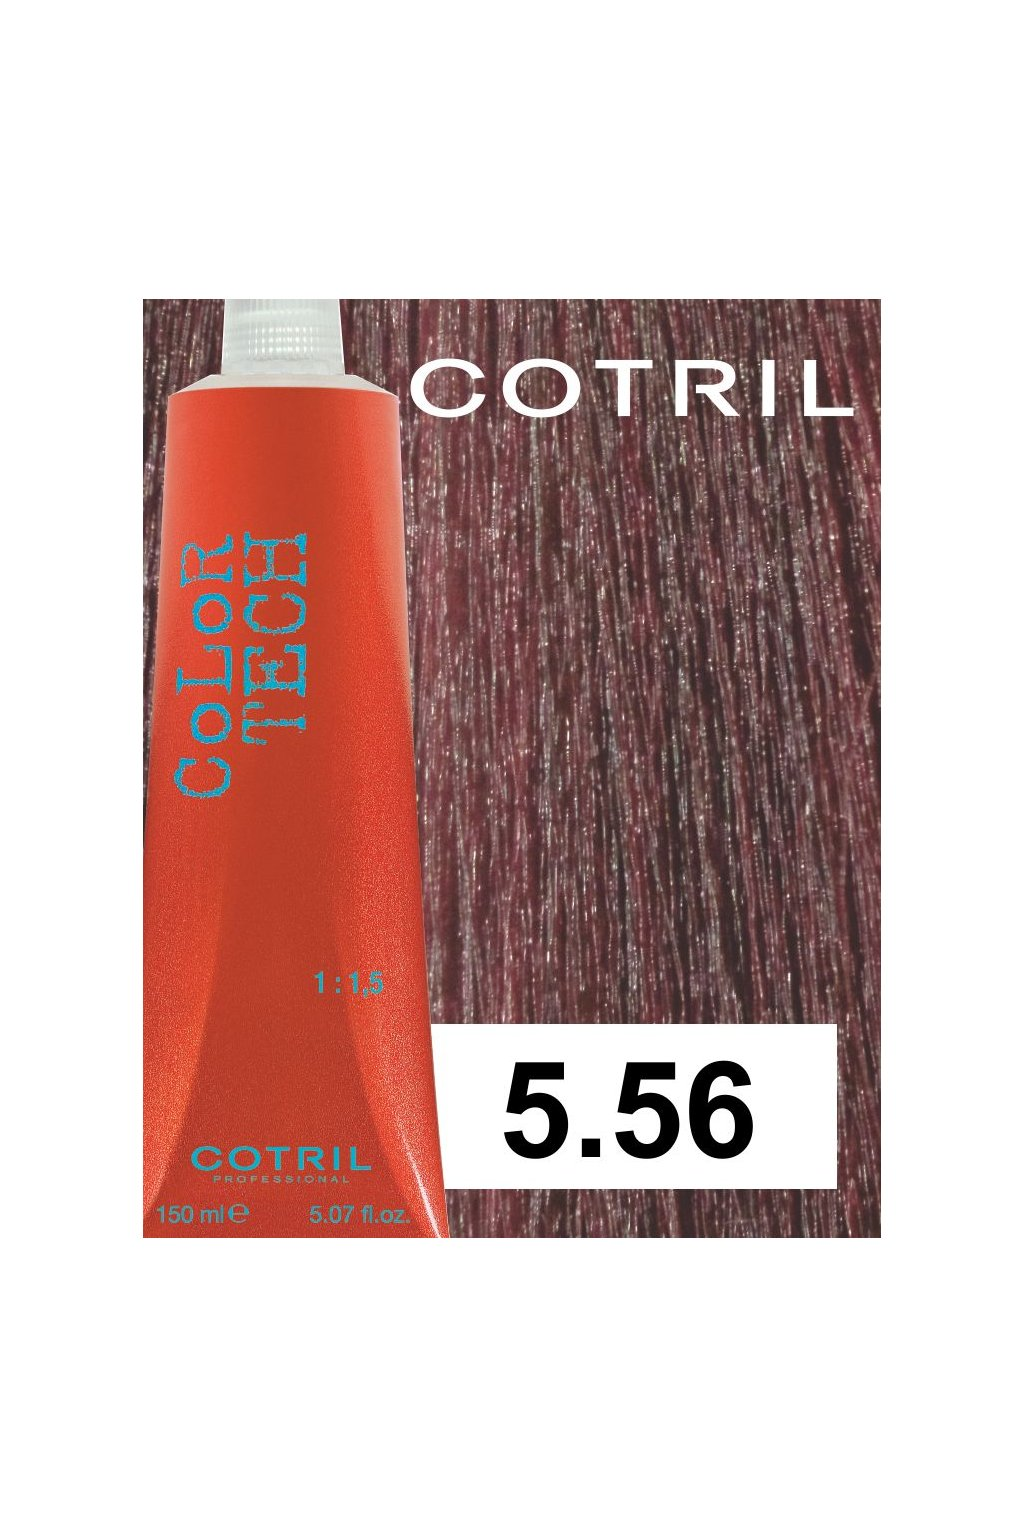 5 56 ct cotril